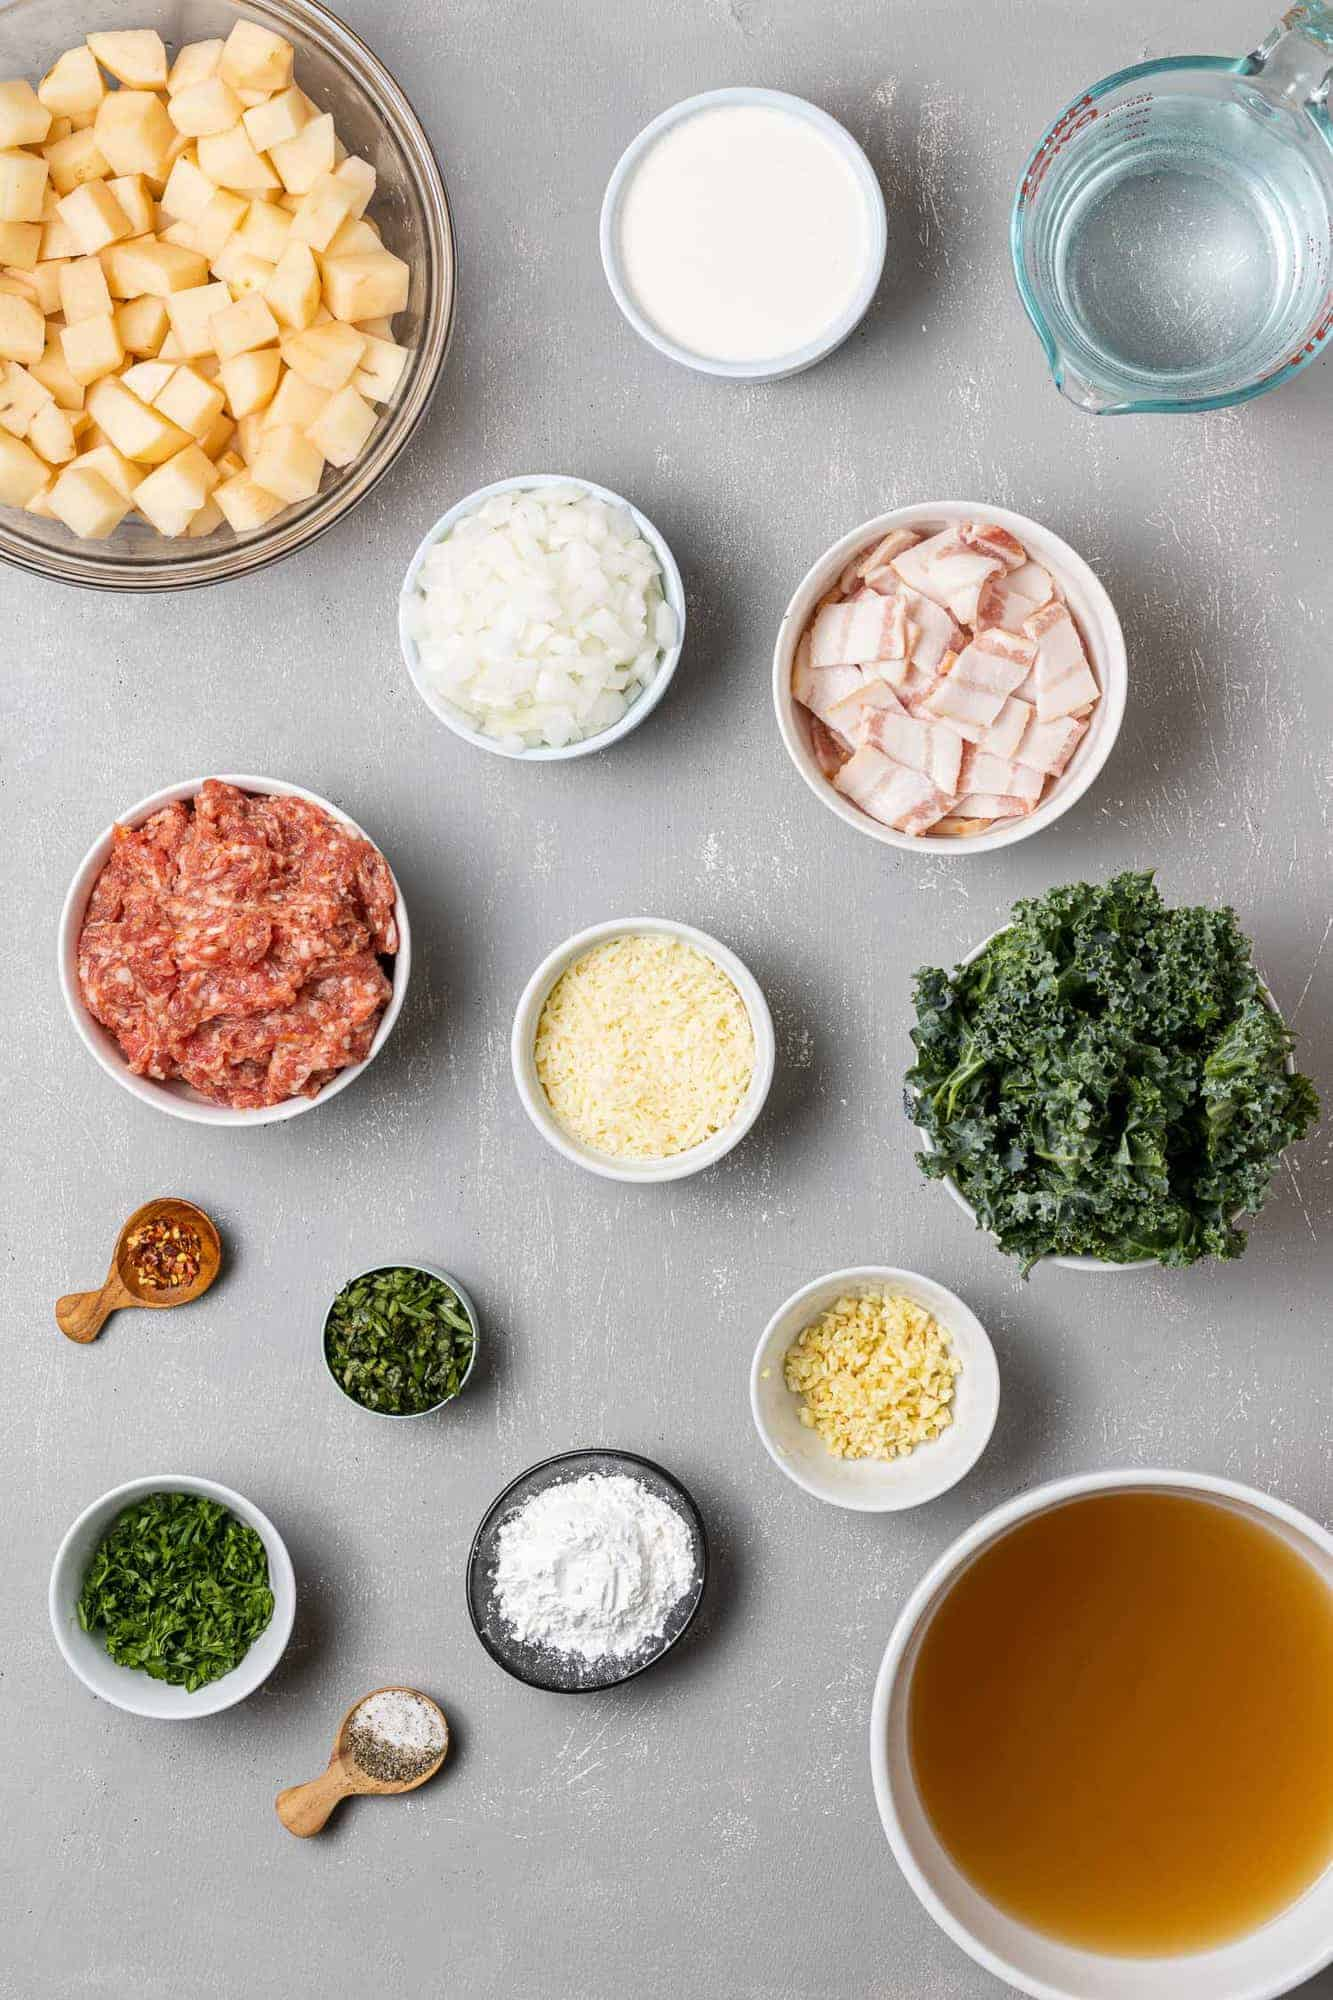 Overhead view of ingredients needed for recipe: sausage, potatoes, kale, and more.